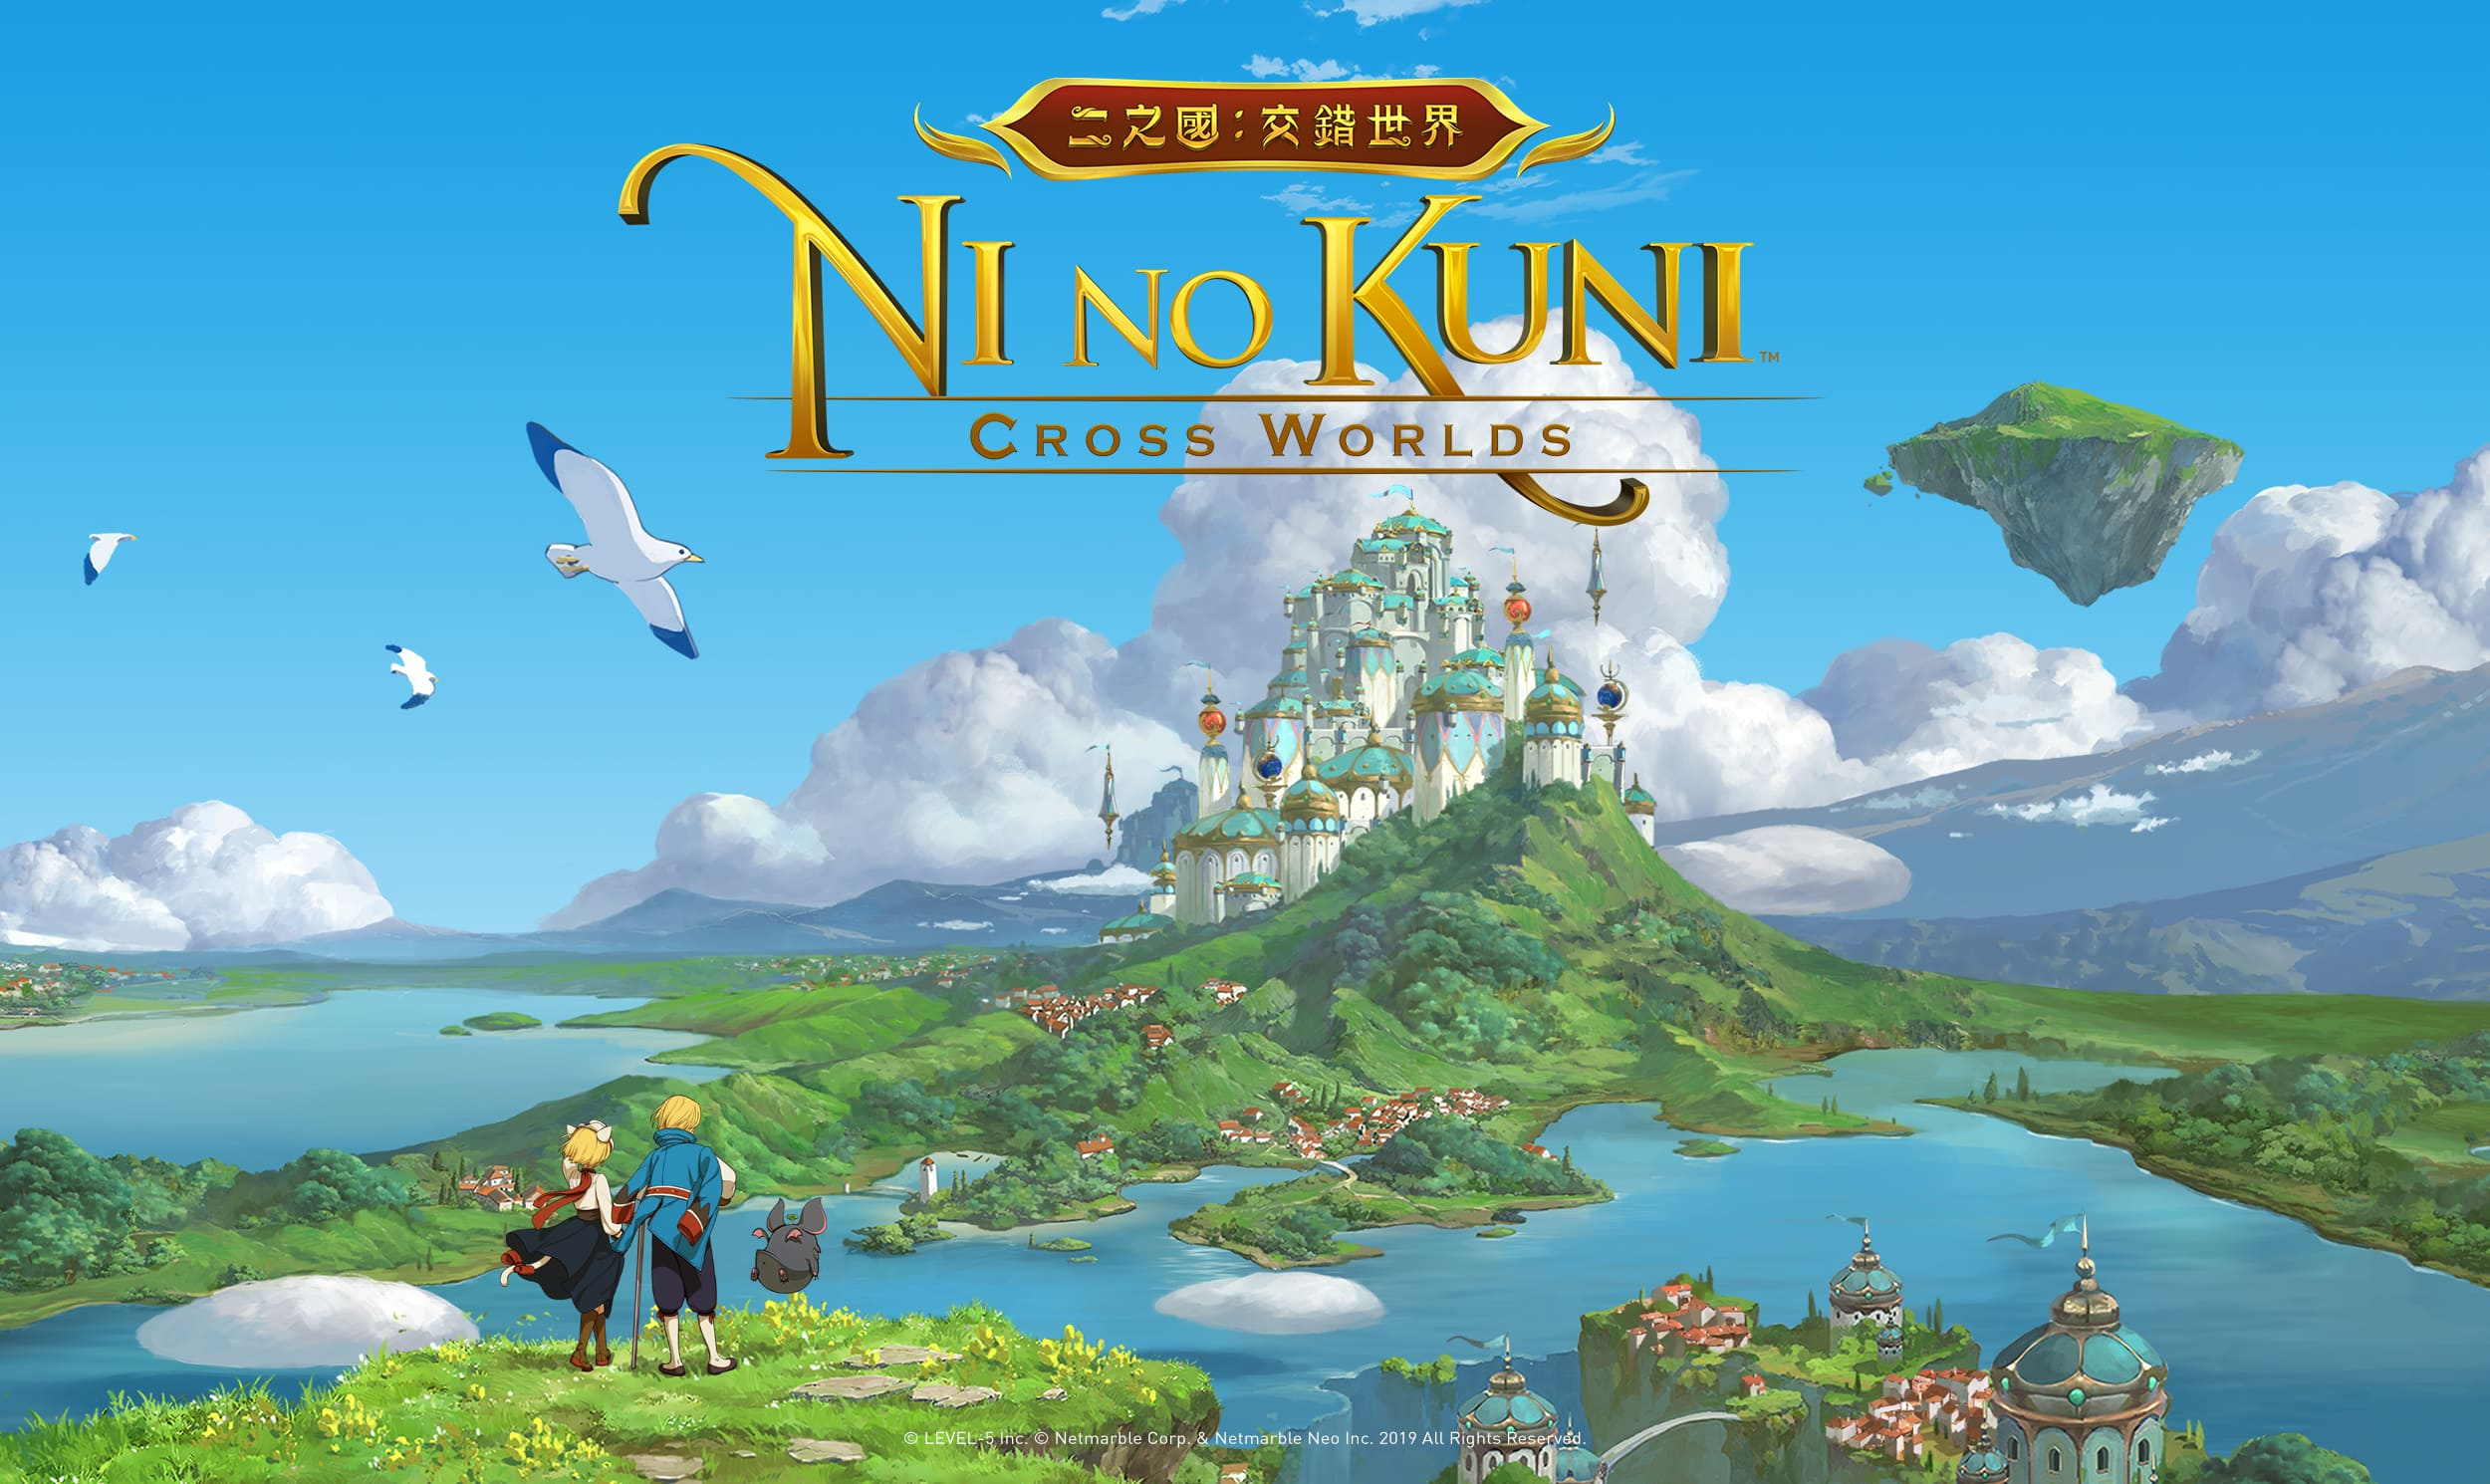 03.Ni no Kuni Cross Worlds